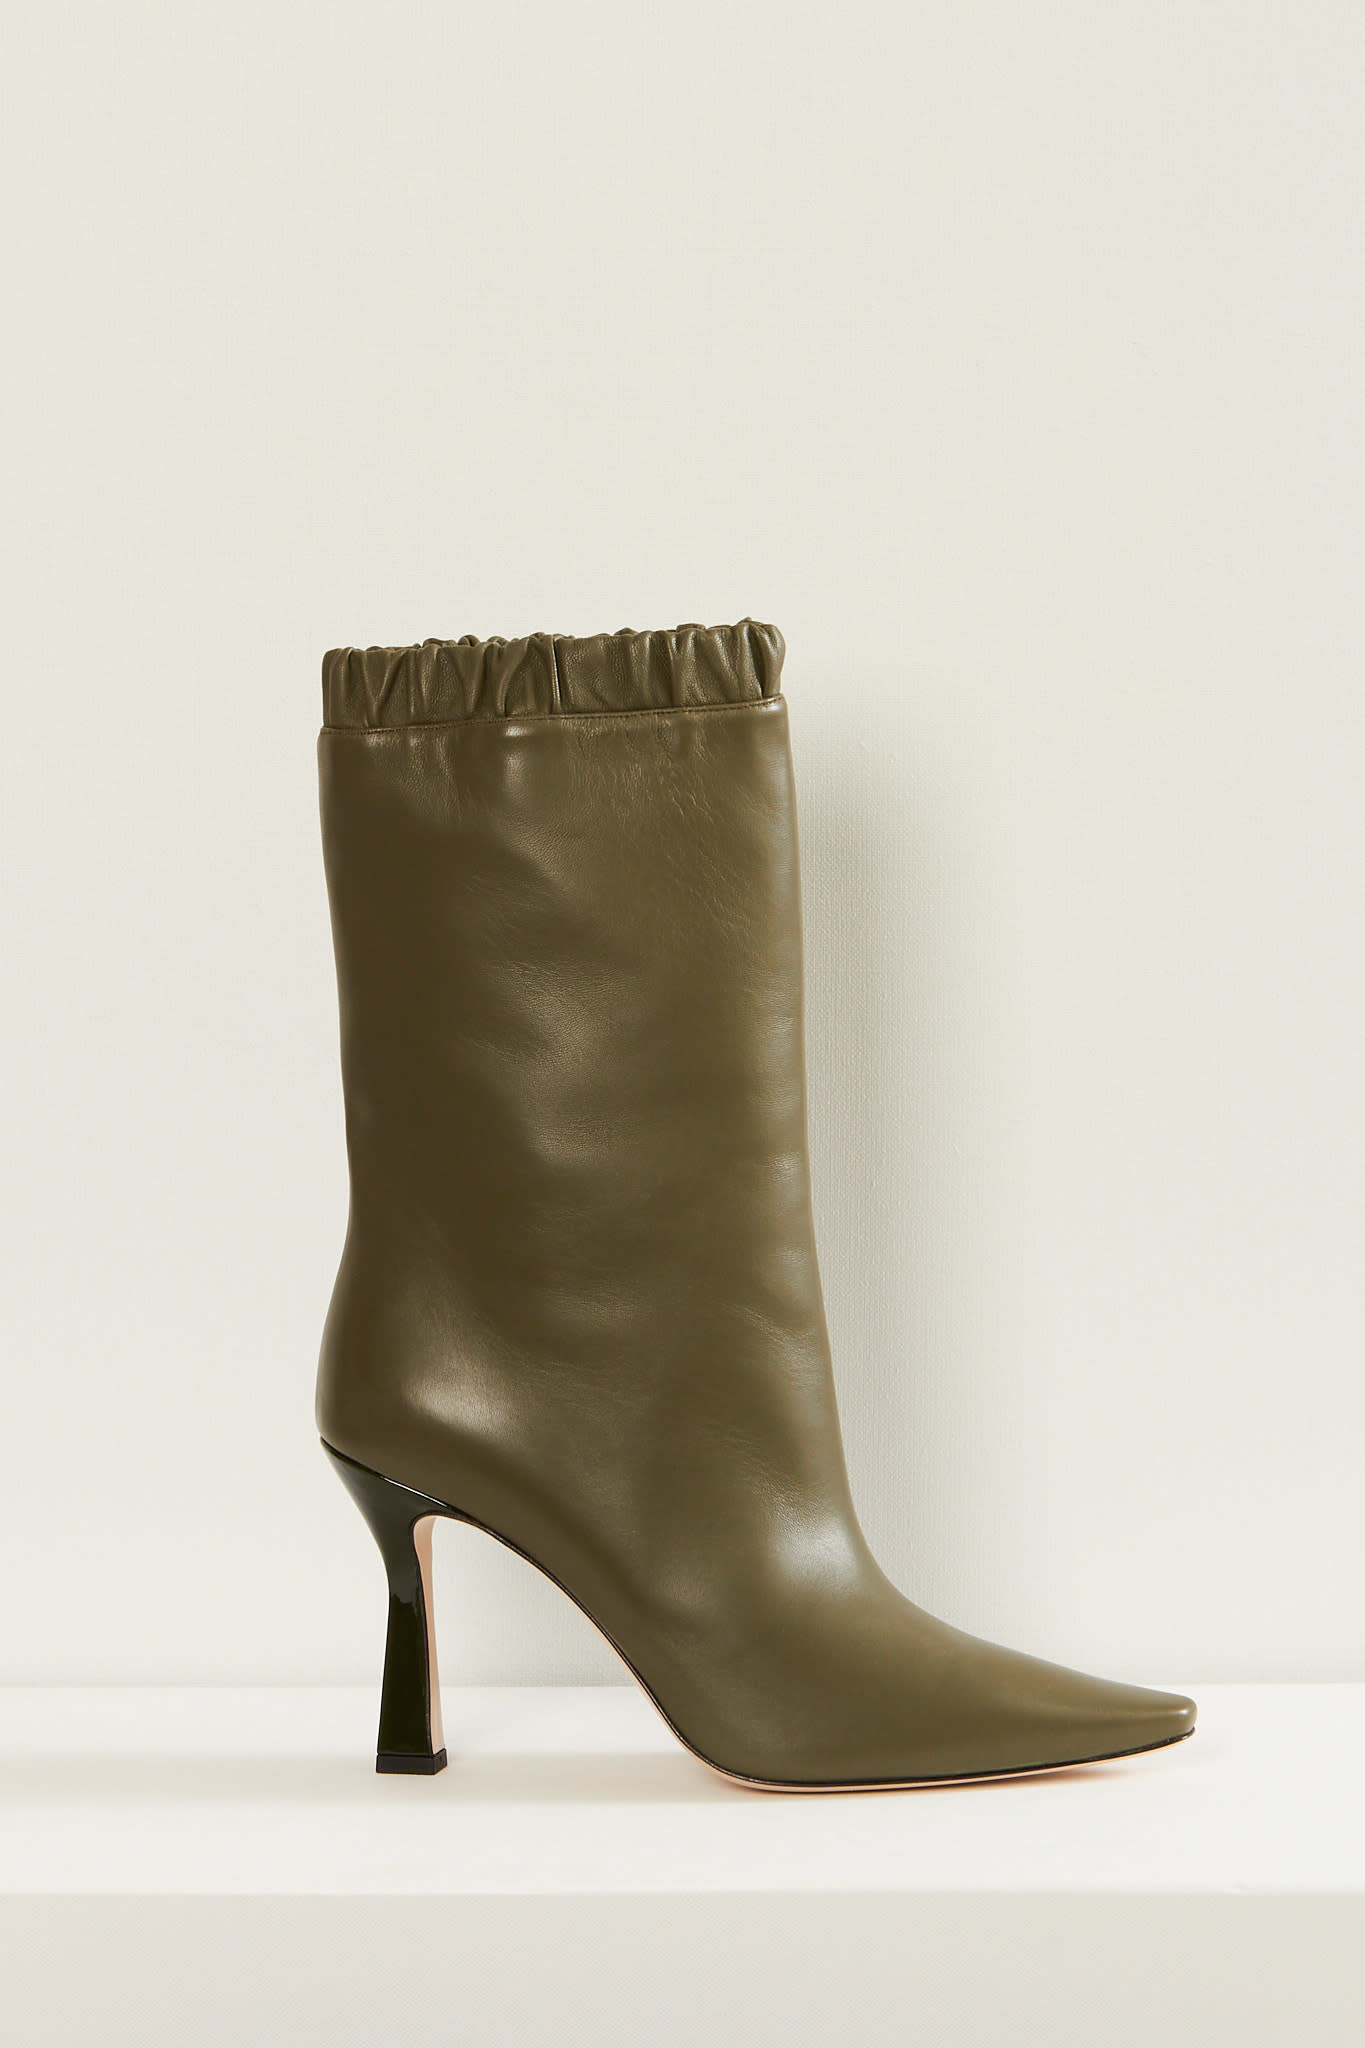 Wandler - Lima slouch lambskin leather boots